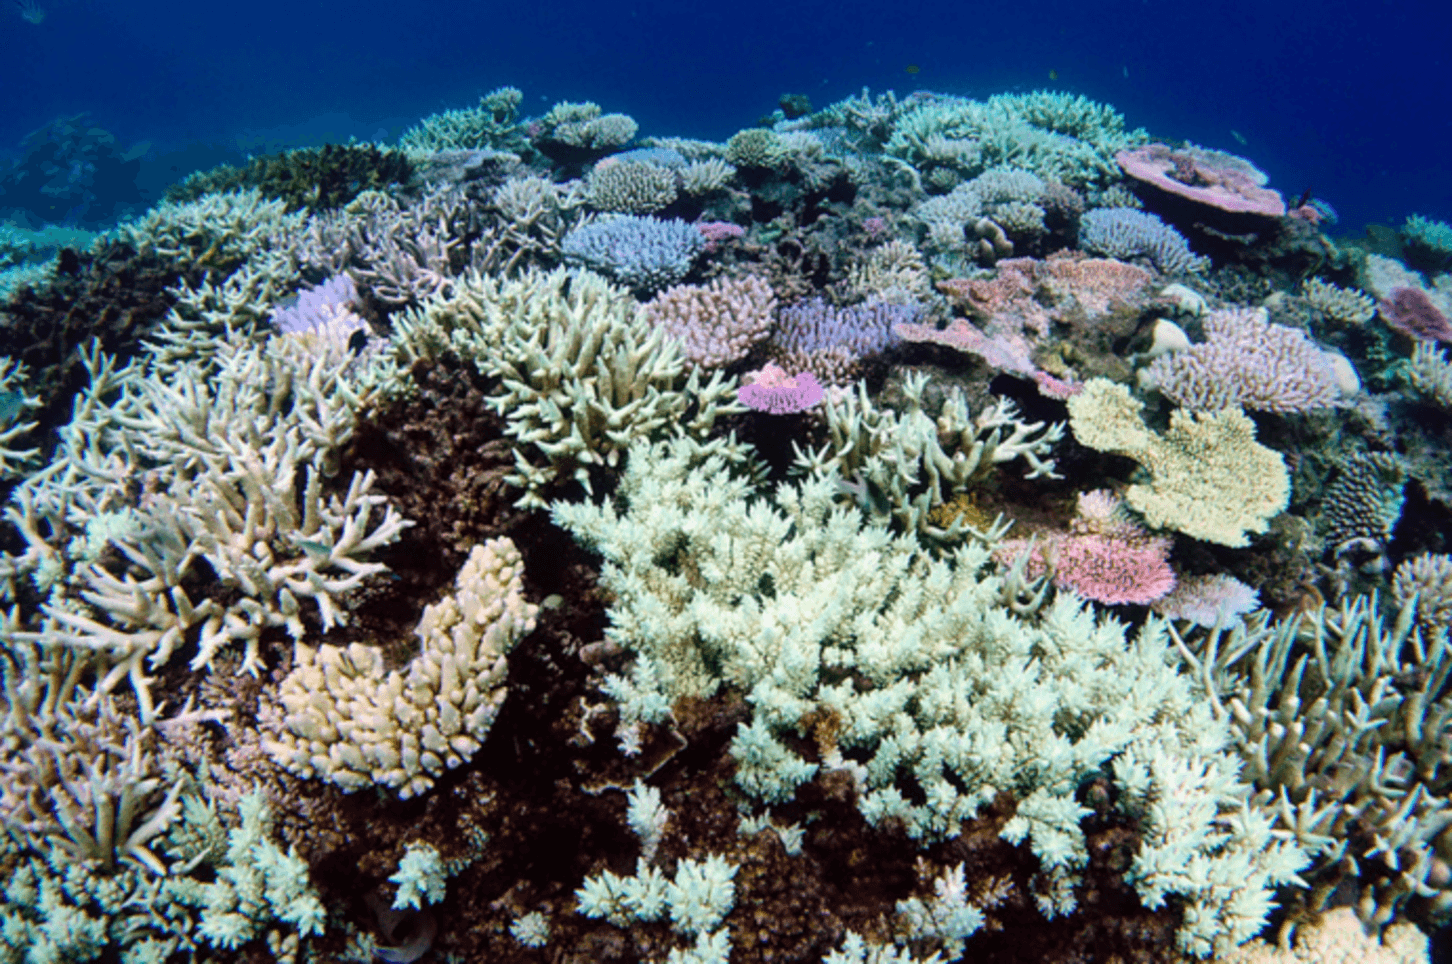 http://theconversation.com/great-barrier-reef-bleaching-stats-are-bad-enough-without-media-misreporting-58283